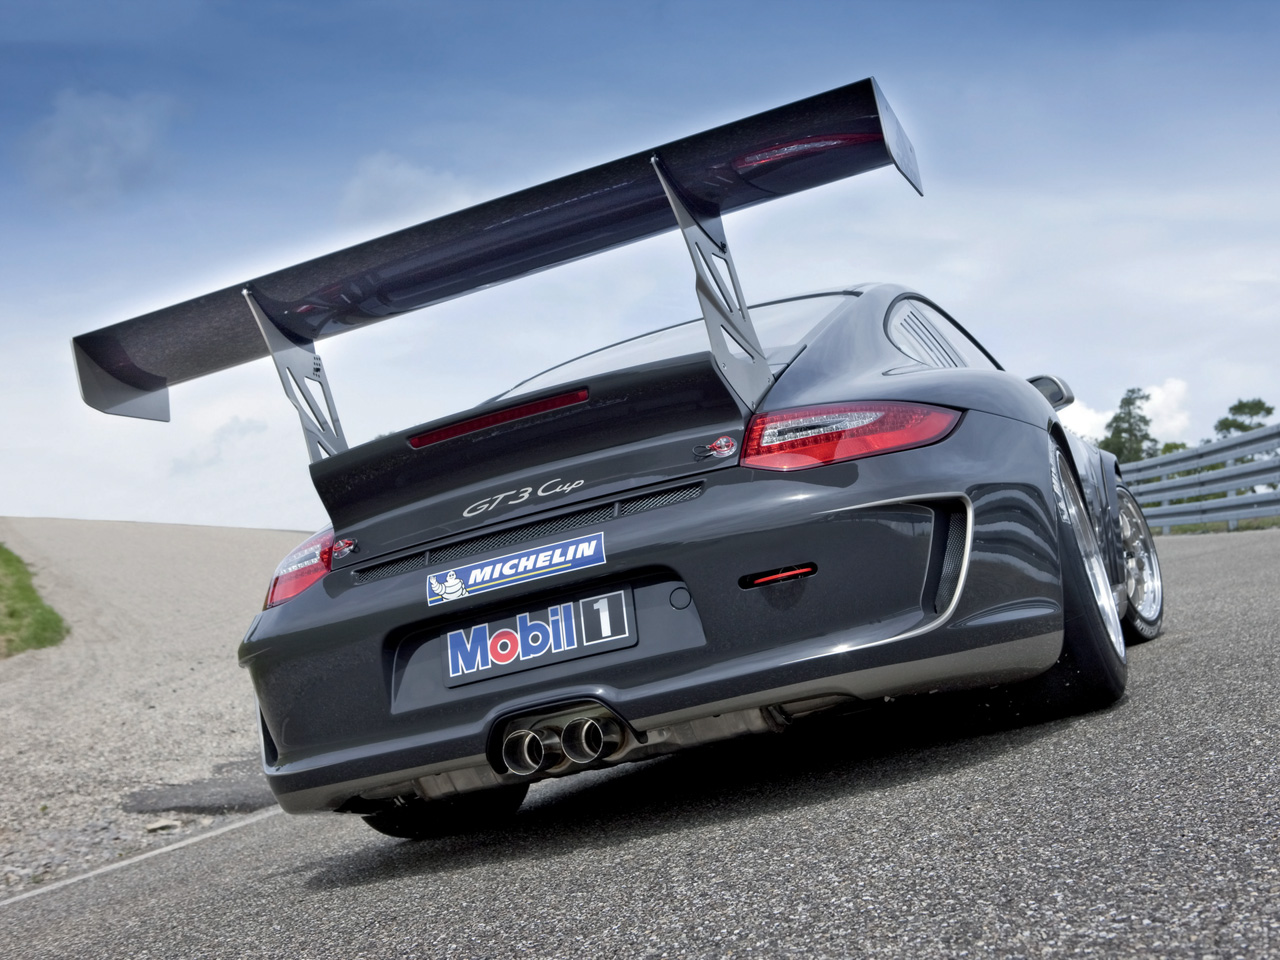 The 911 GT3 Cup comes with a